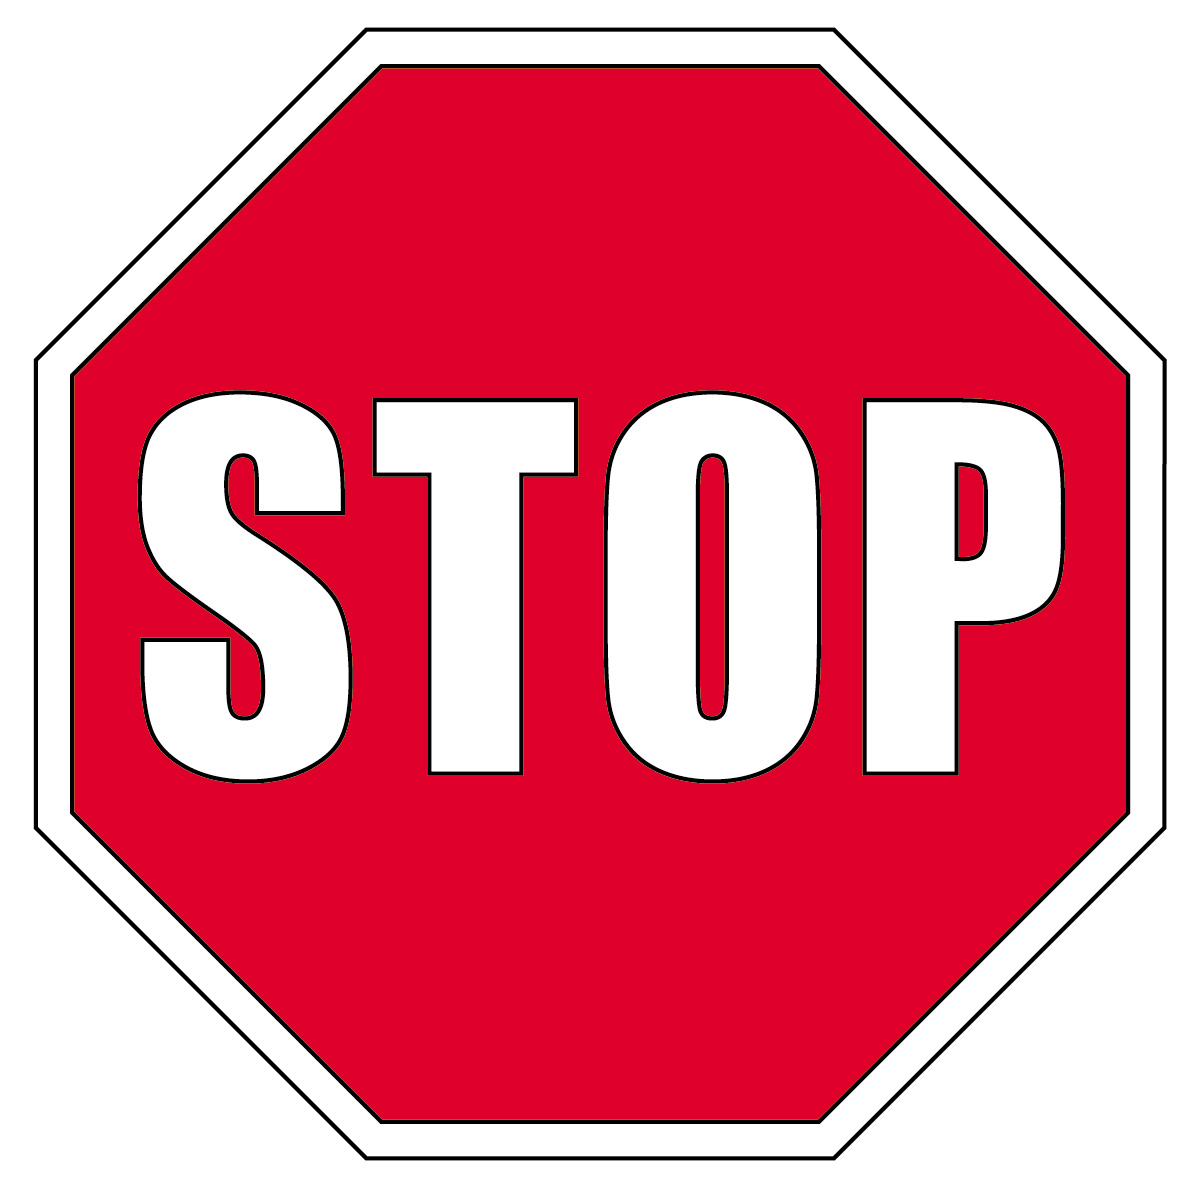 1200x1200 Stop Sign Clip Art Microsoft Free Clipart Images 2